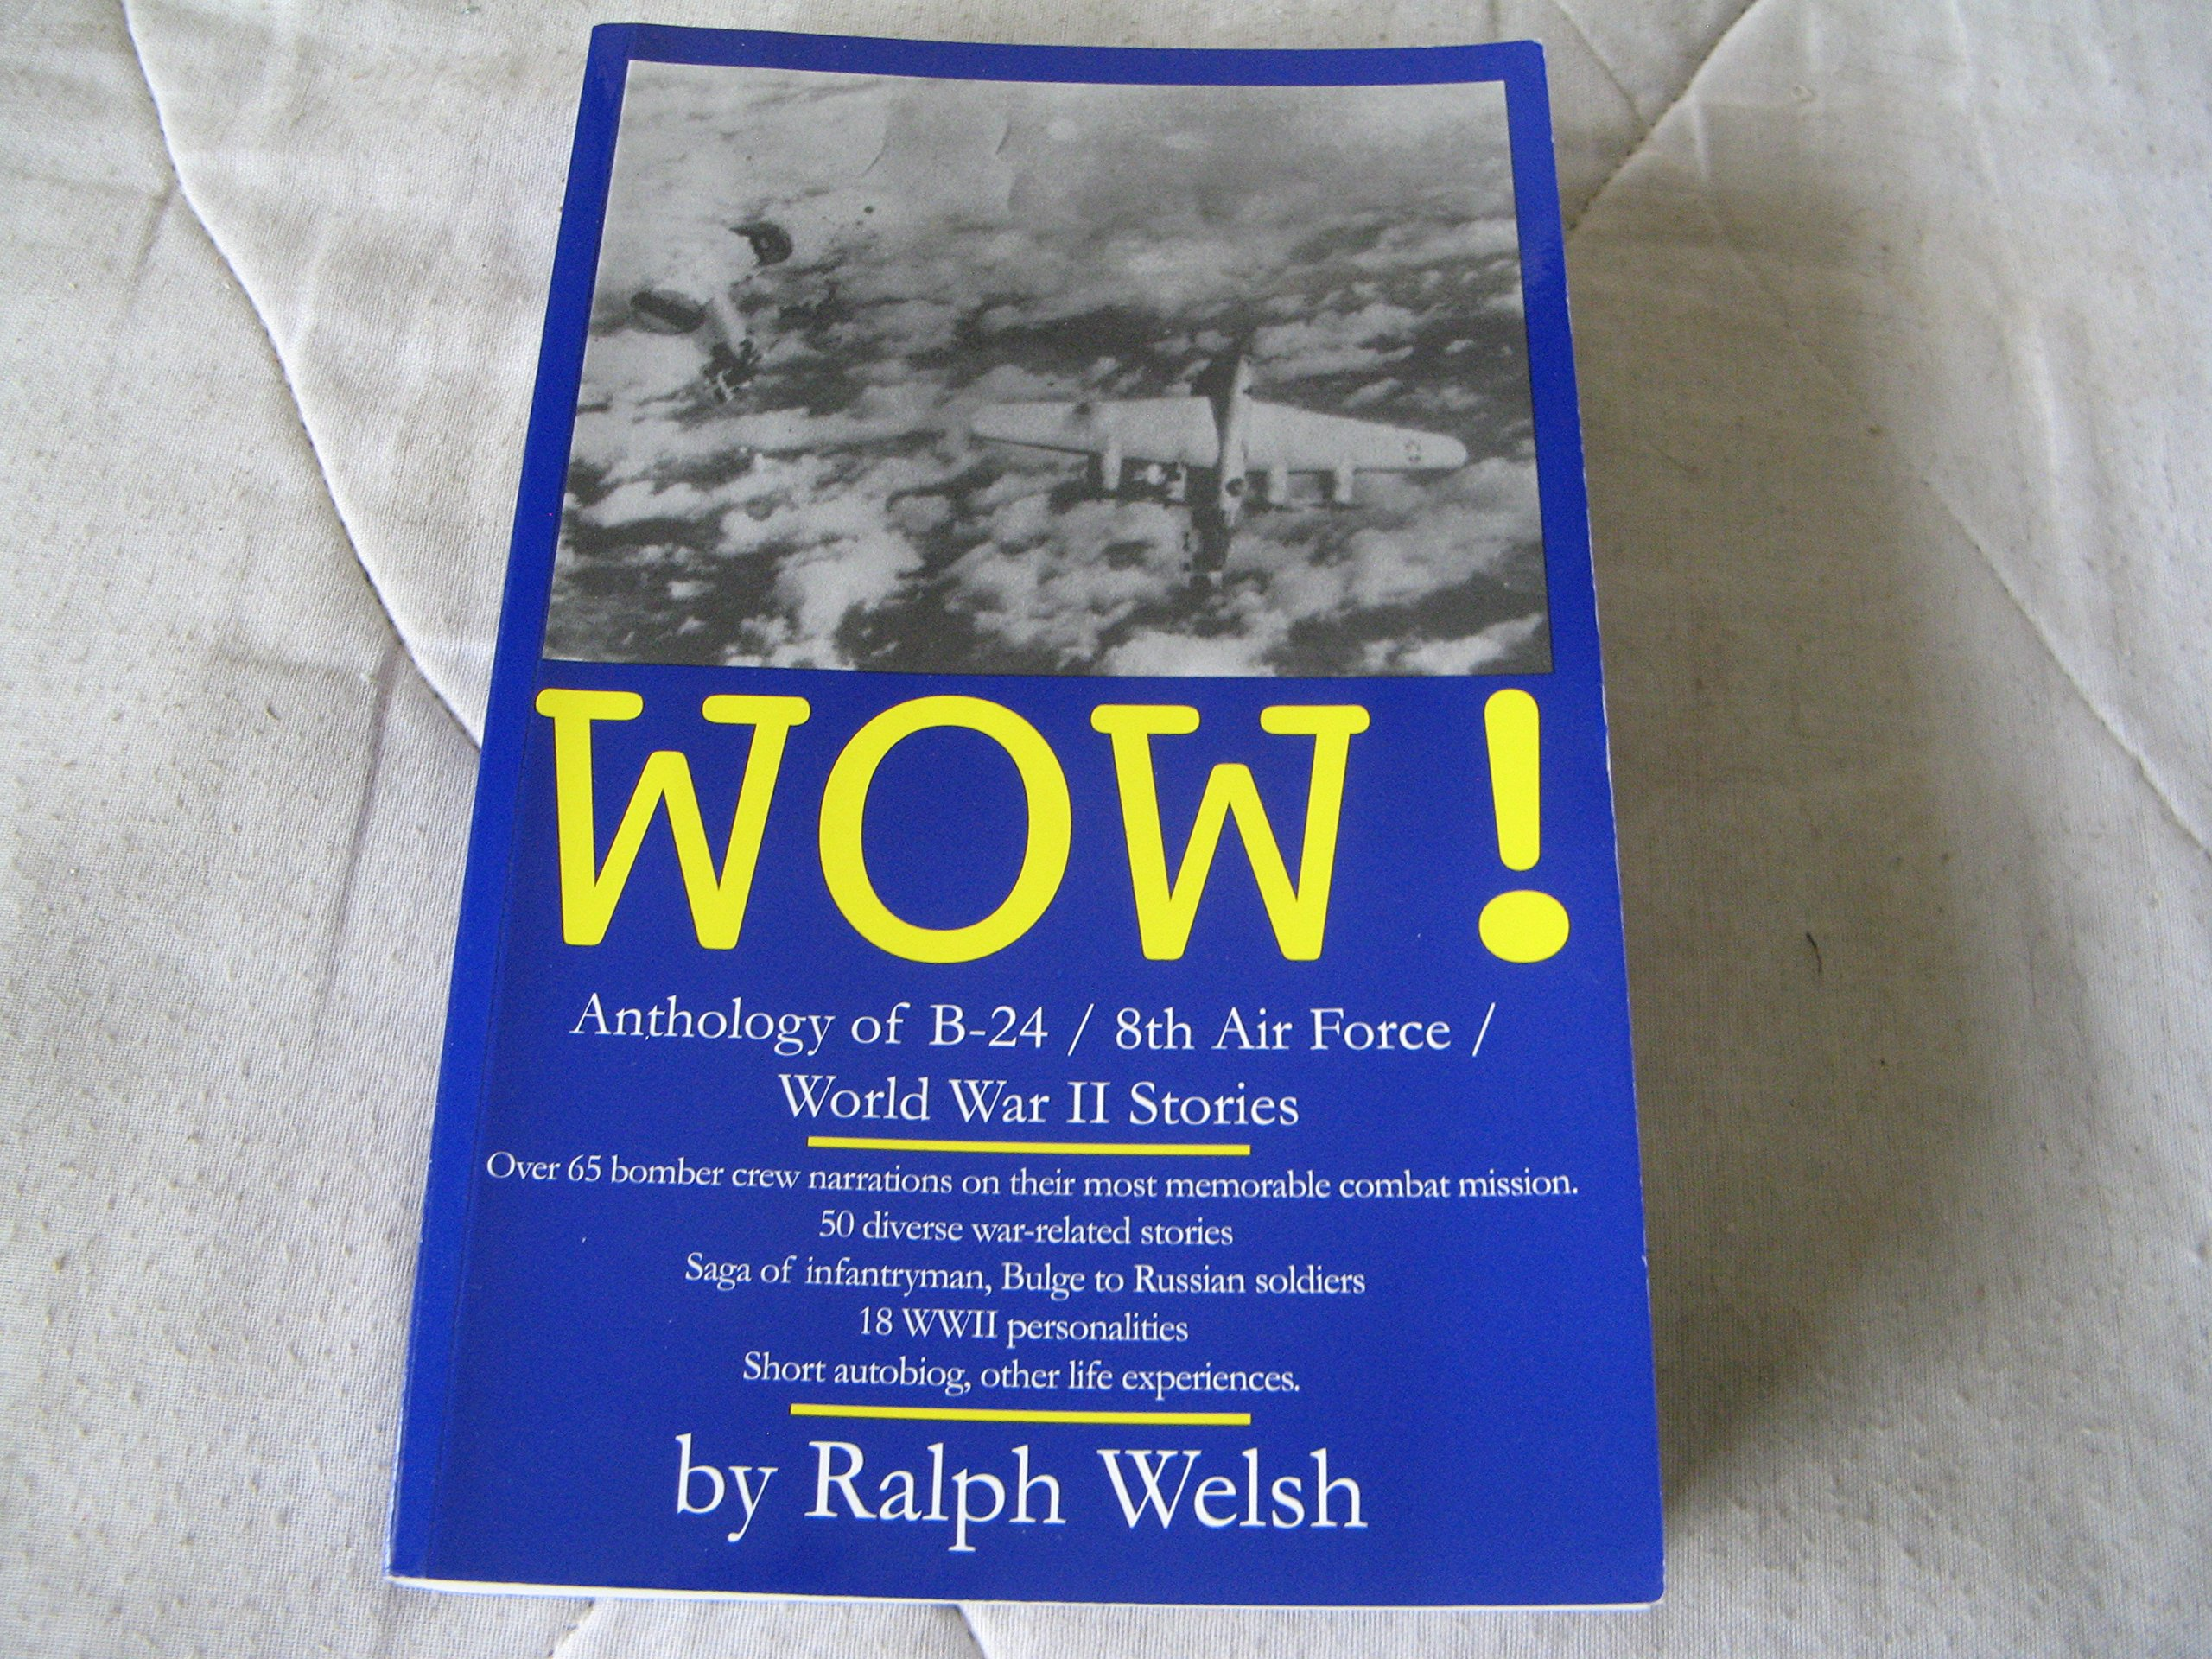 WOW!: An anthology with 149 World War II stories of bombing missions, personalities, diverse life experiences. PDF